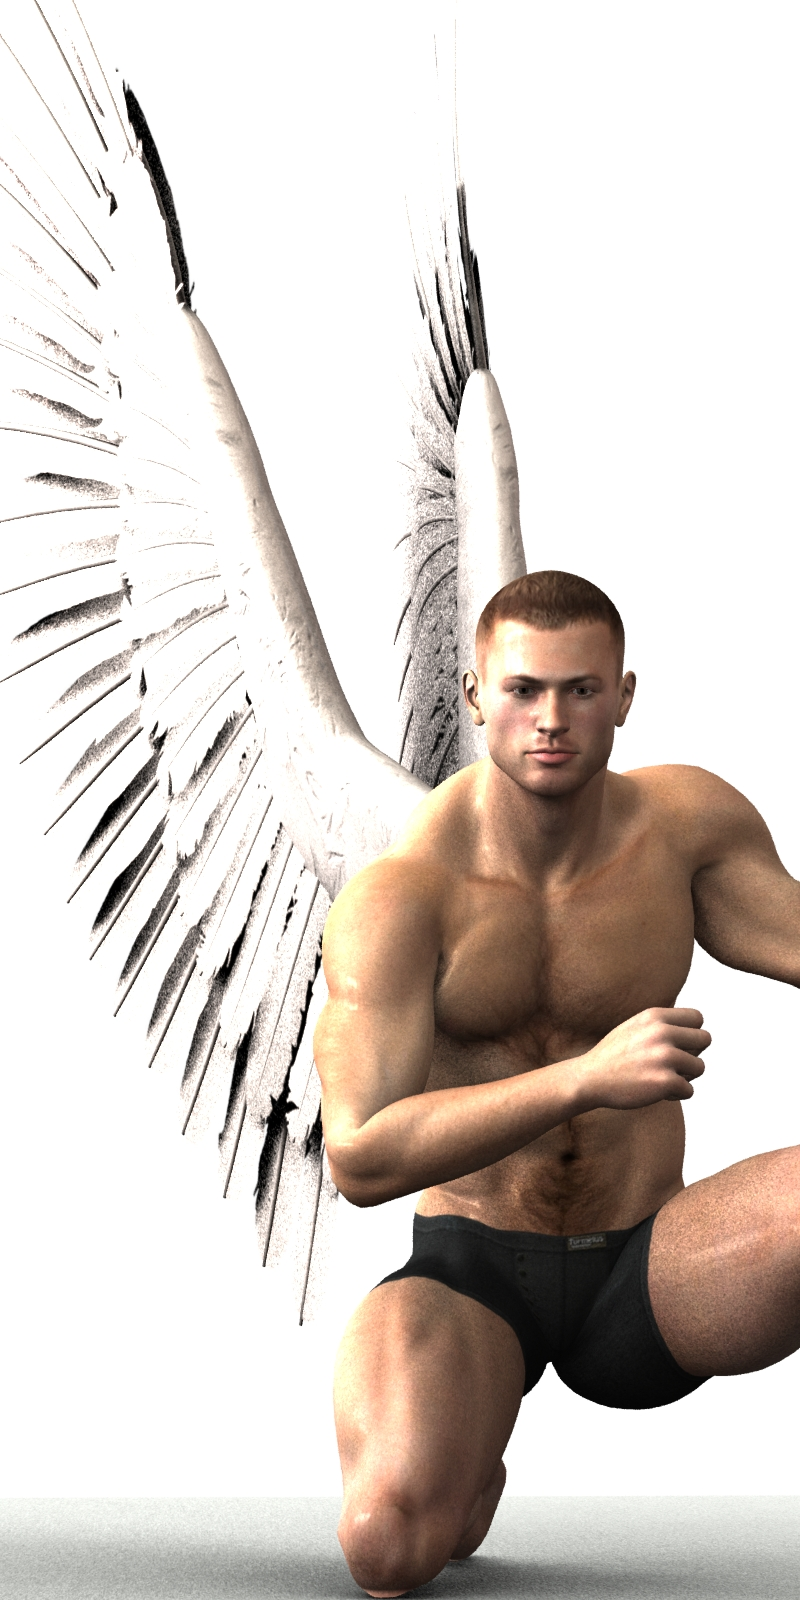 Farconville's Angel Poses for Michael 4